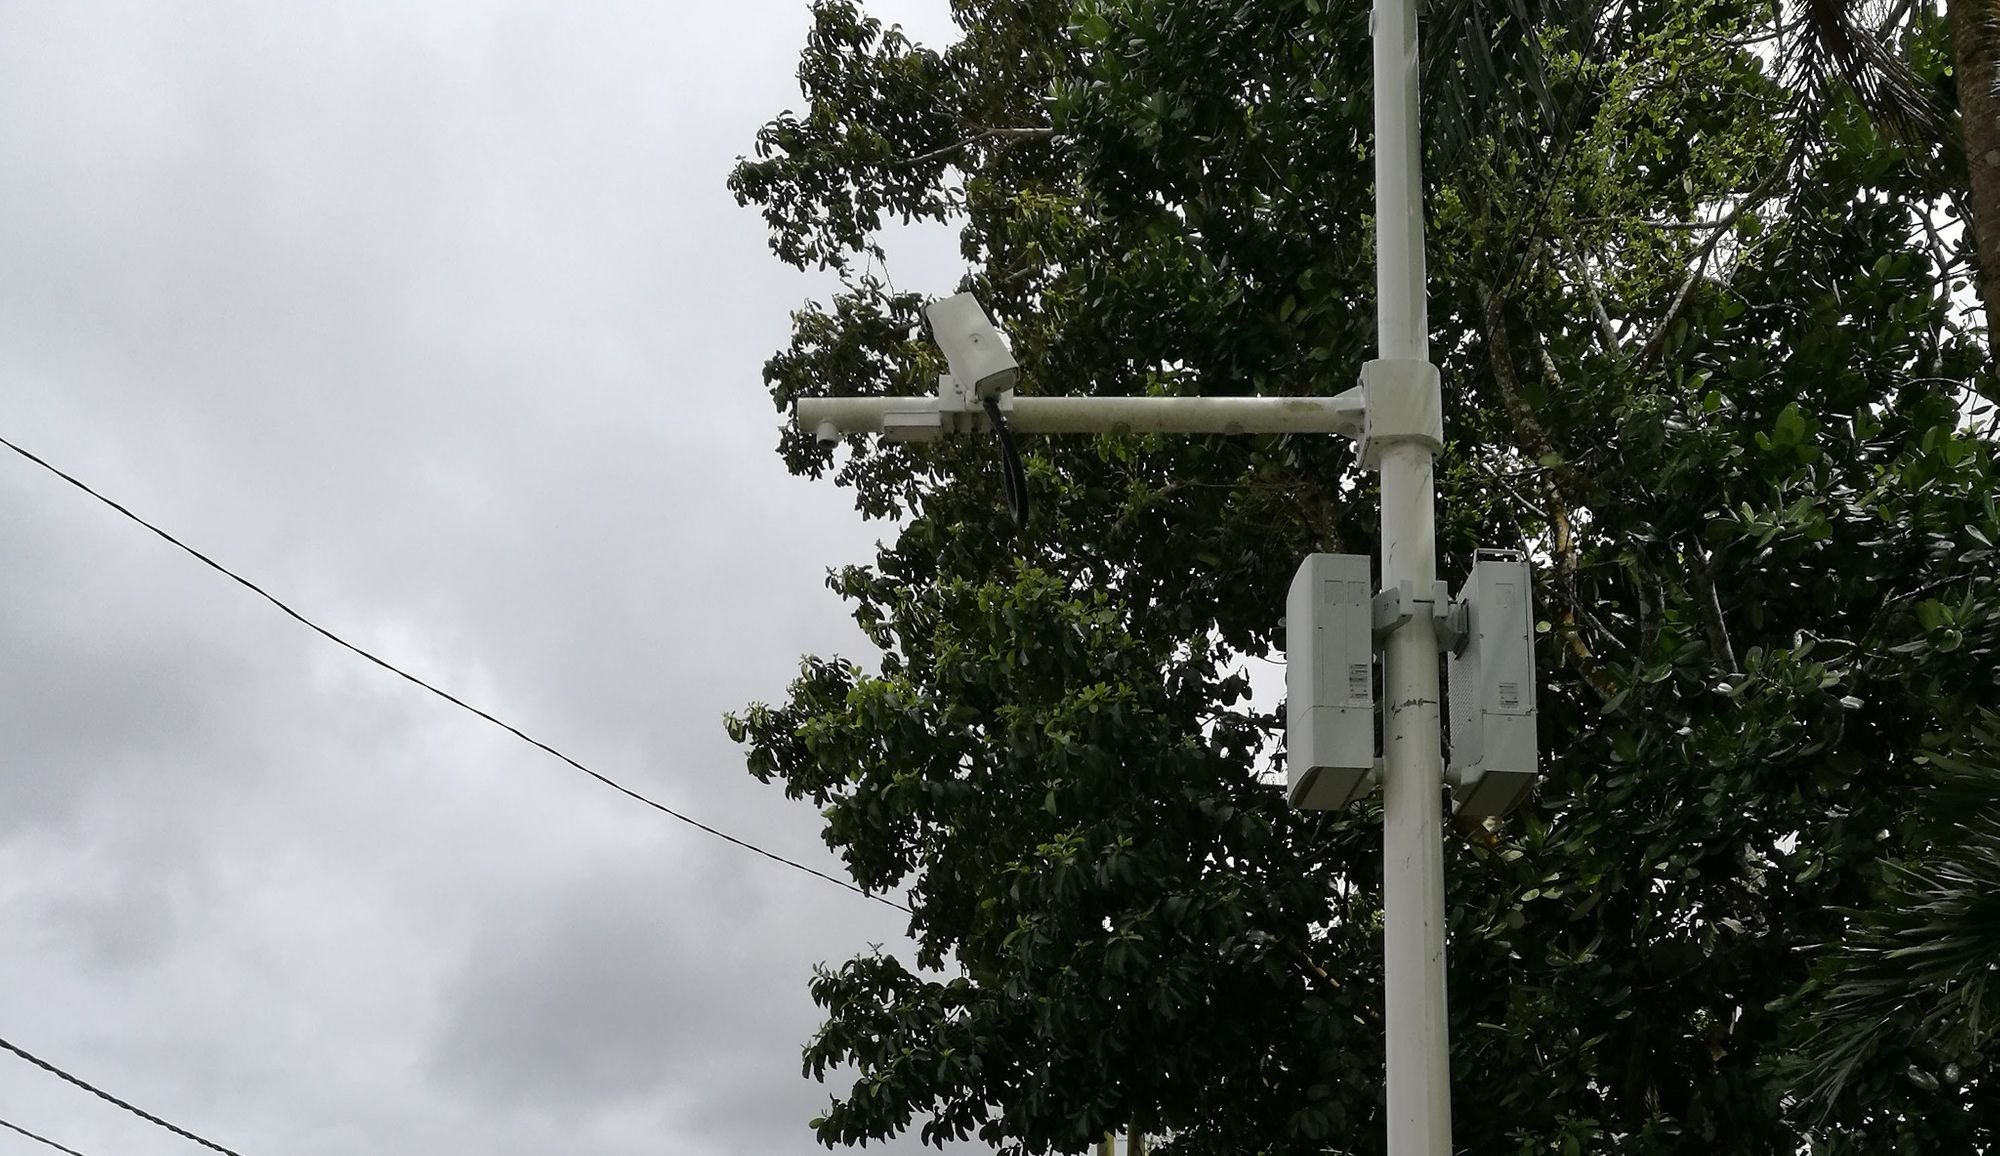 Safe City Project - Is this a broken camera?